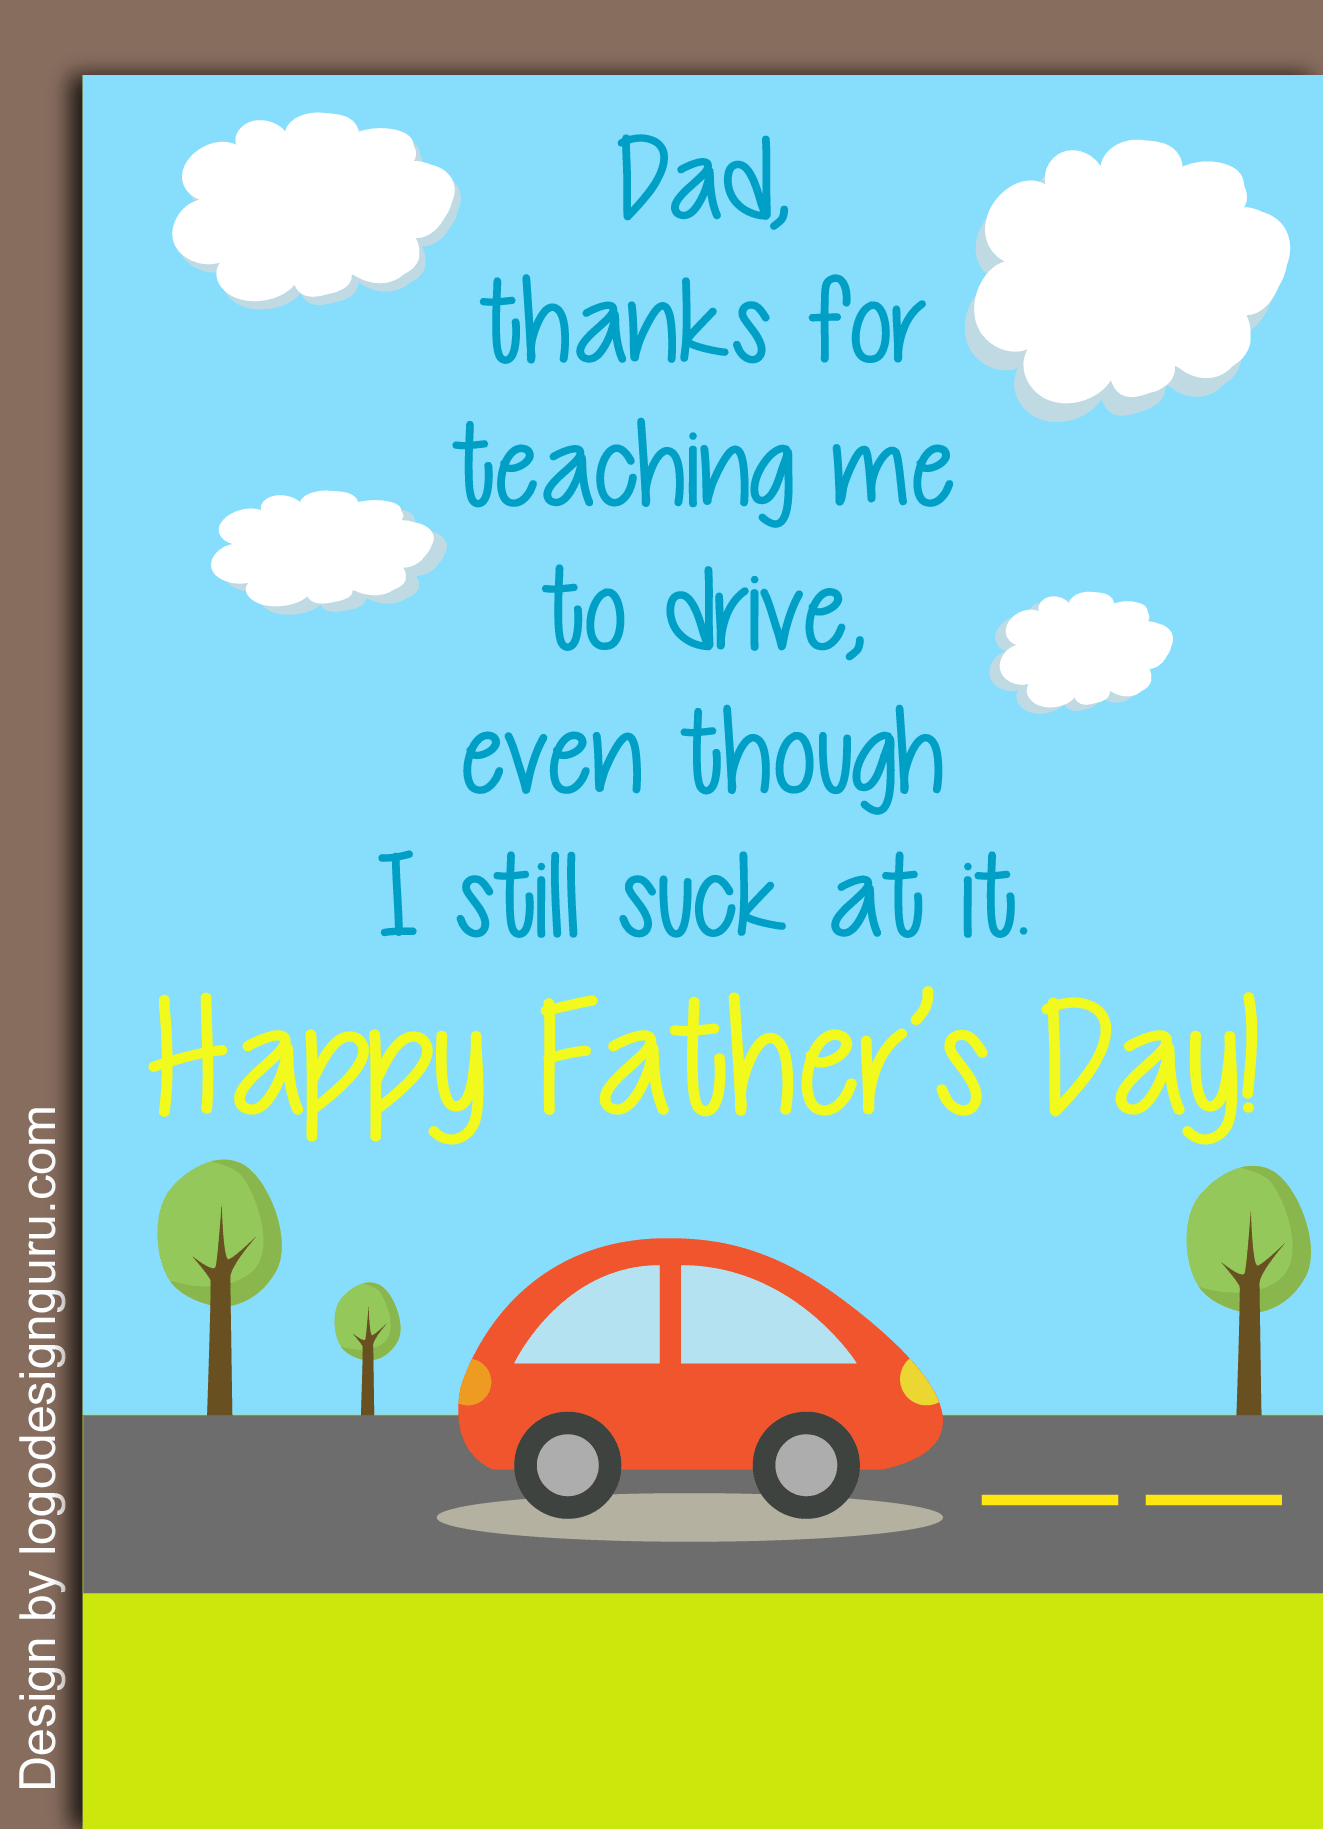 10 Quirky Fathers Day Greeting Card Ideas Will You Learn Driving